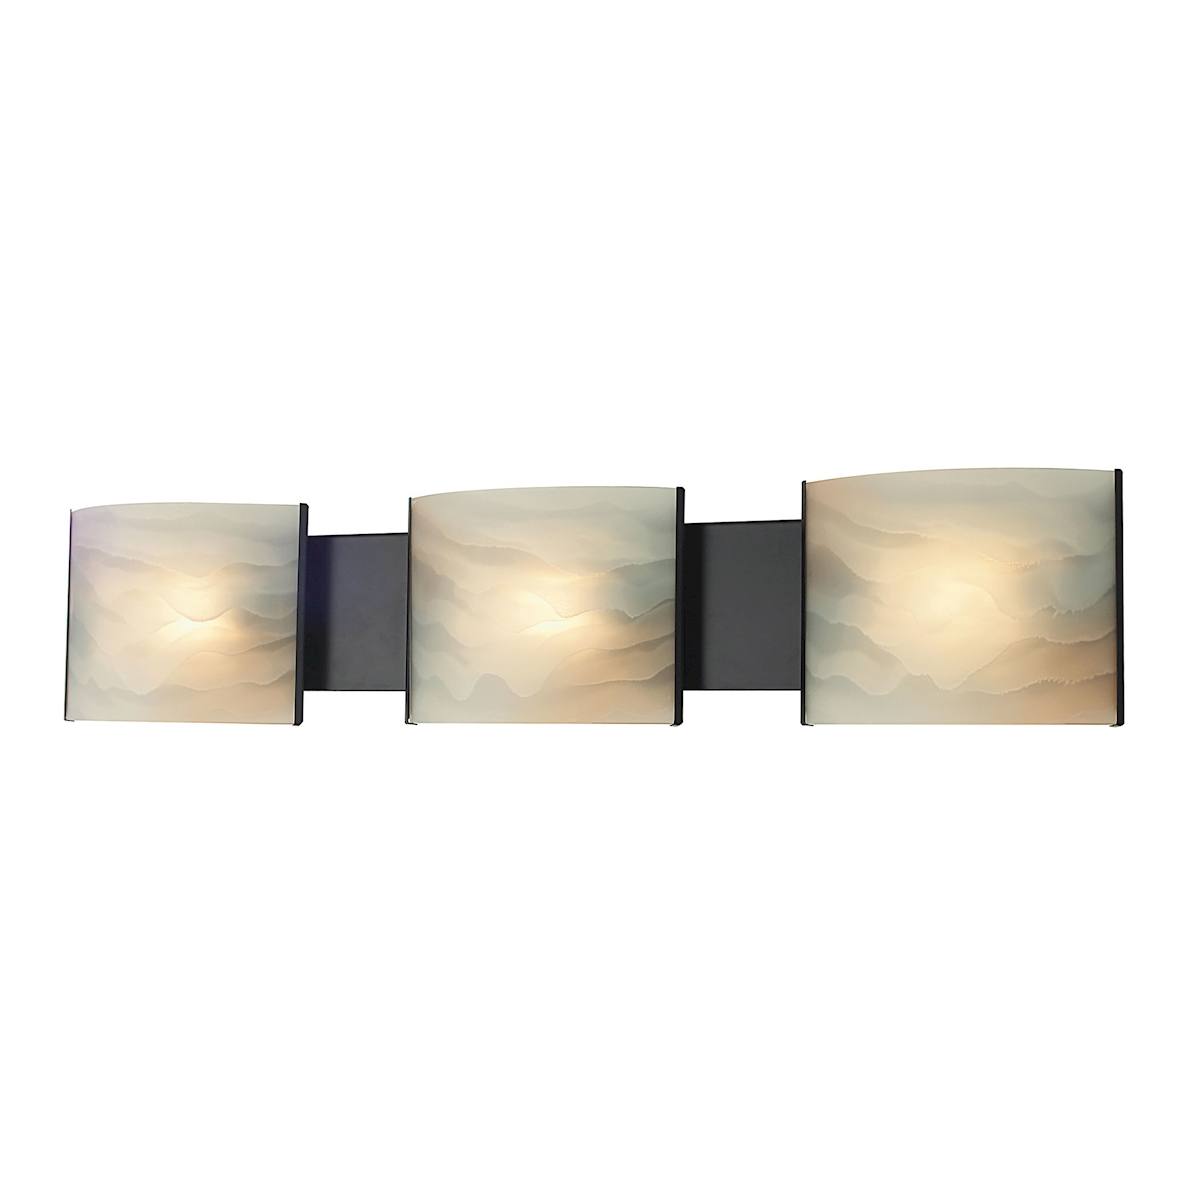 Pannelli Vanity - 3 Light with Lamps. Honey Alabaster Glass / ORB Finish